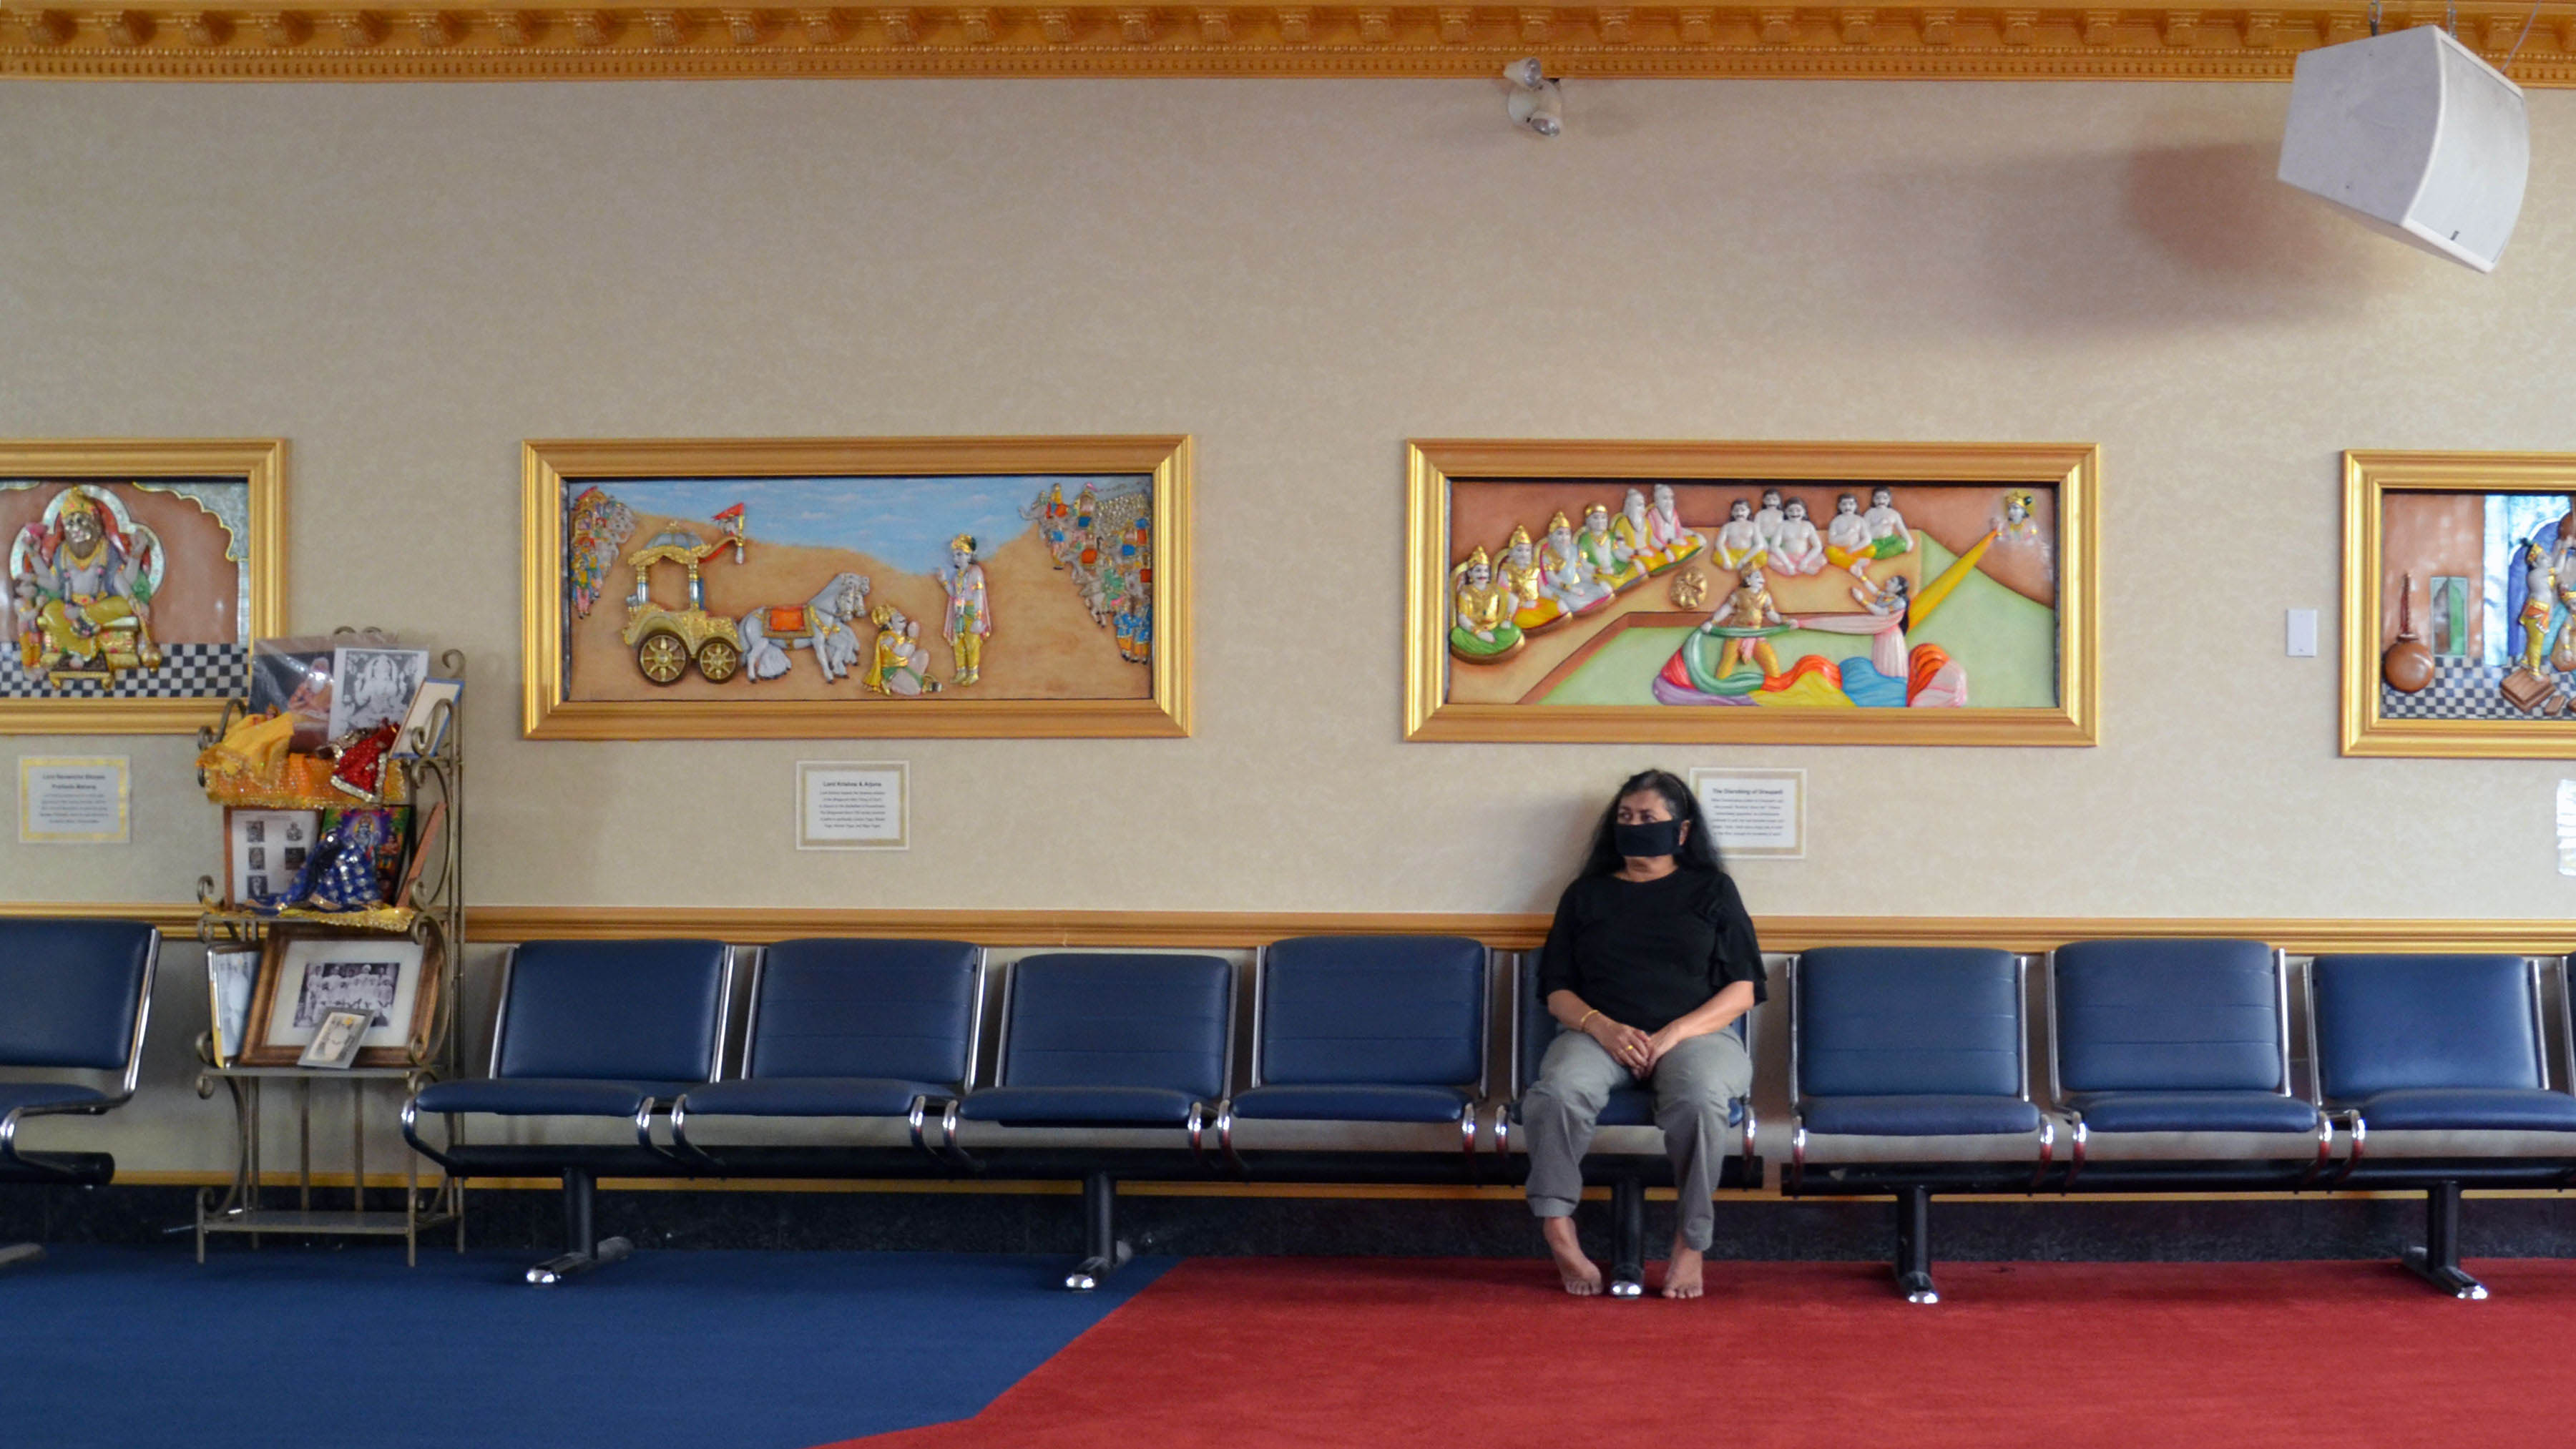 A masked woman sits alone on benches in a Hindu temple.